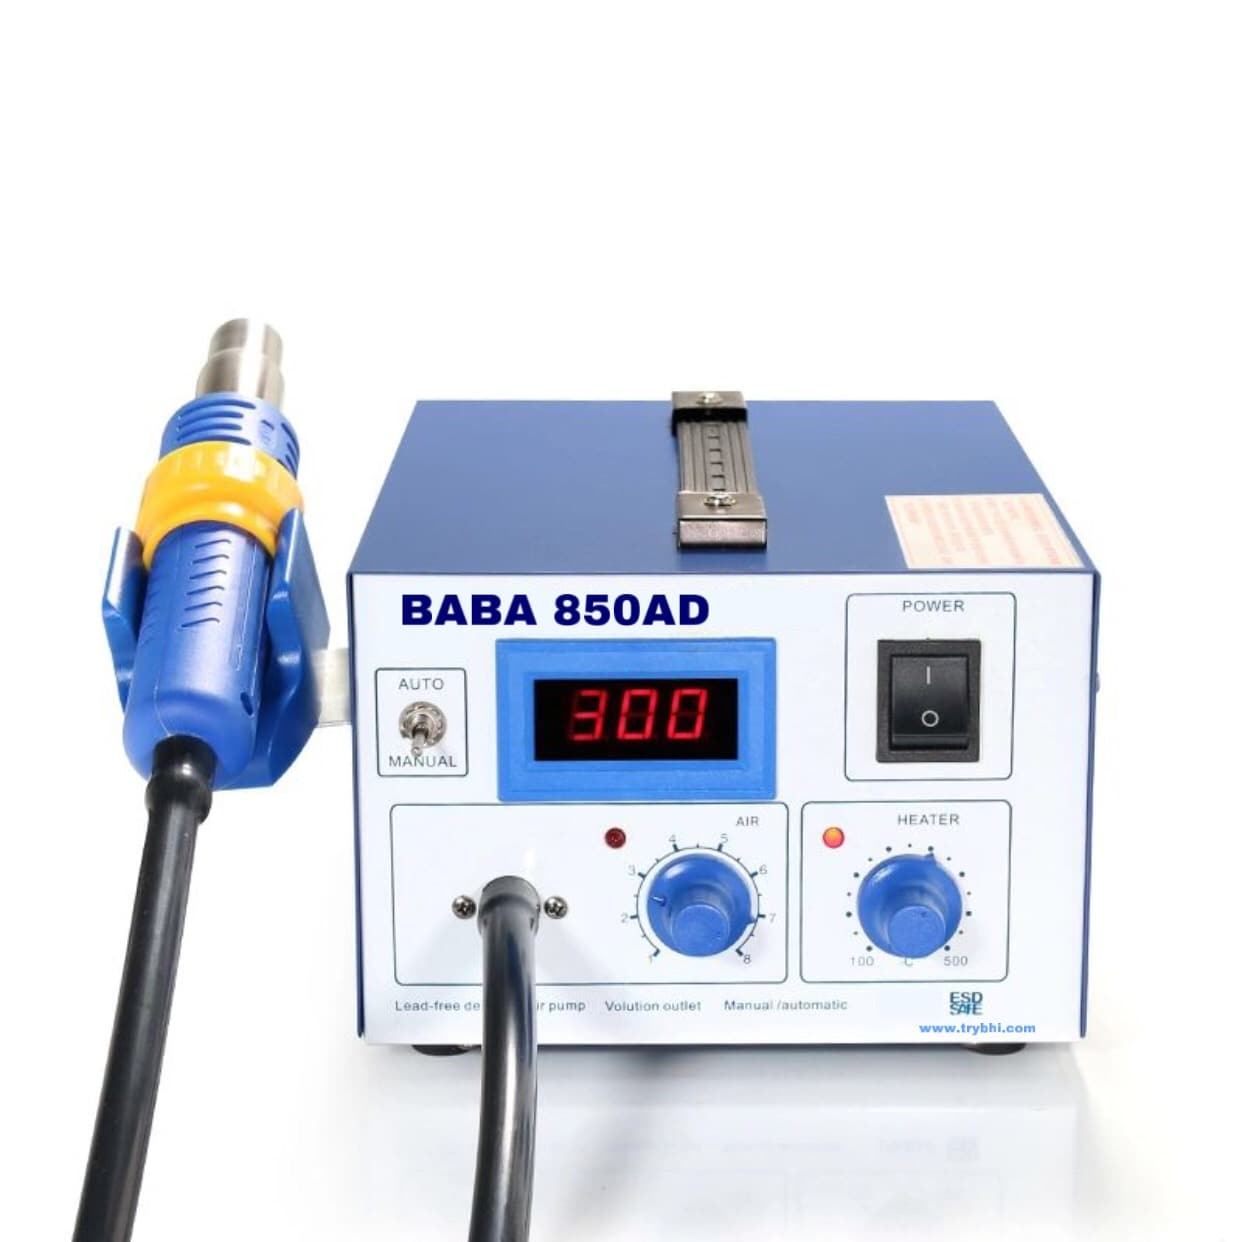 BABA 850 AD SMD Rework Station Digital Display Best SMD Station Plastic Burn Free